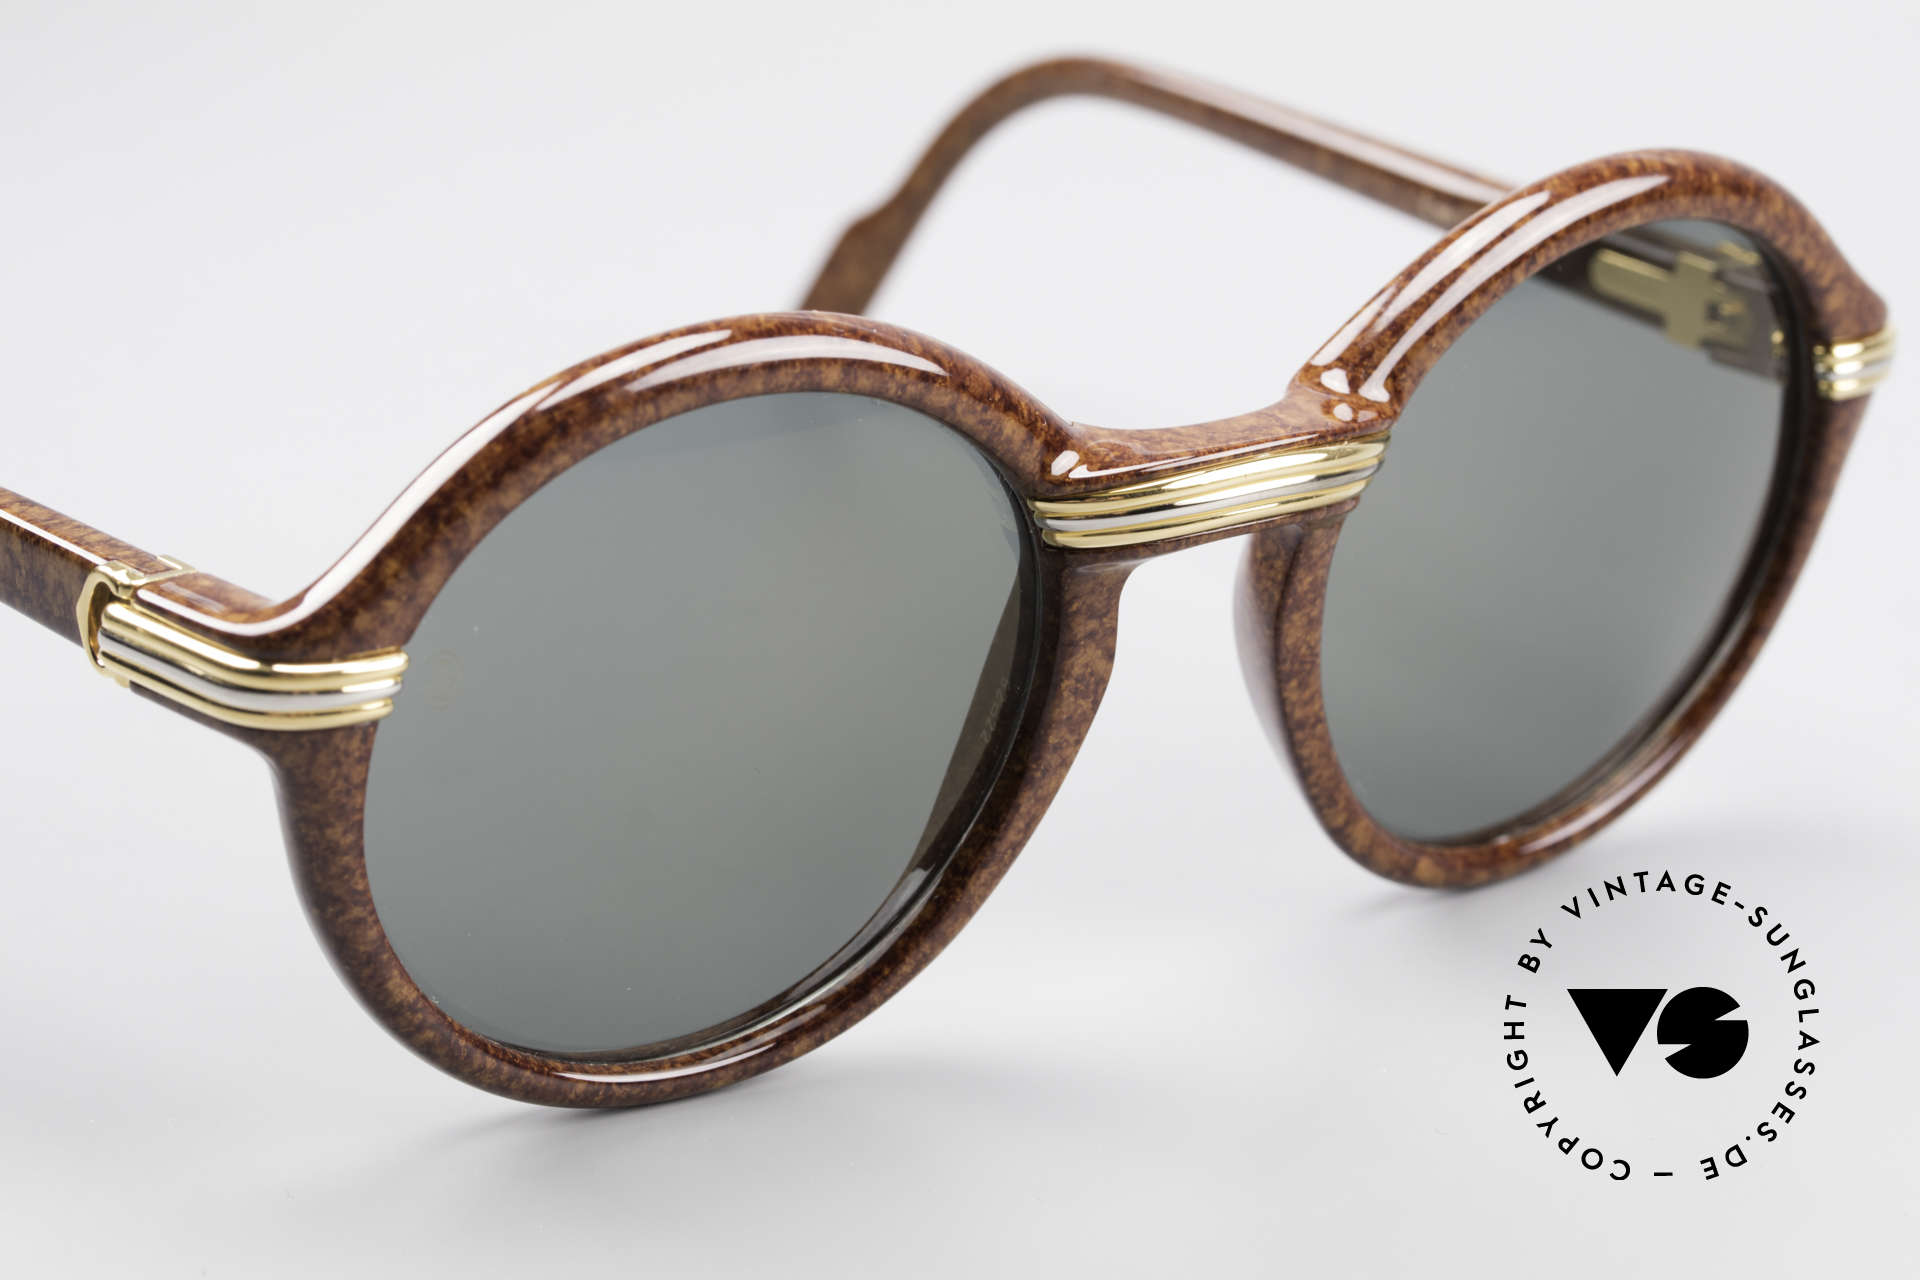 Cartier Cabriolet Round Luxury Shades Large, with serial number, Cartier box, leather case & packing, Made for Men and Women